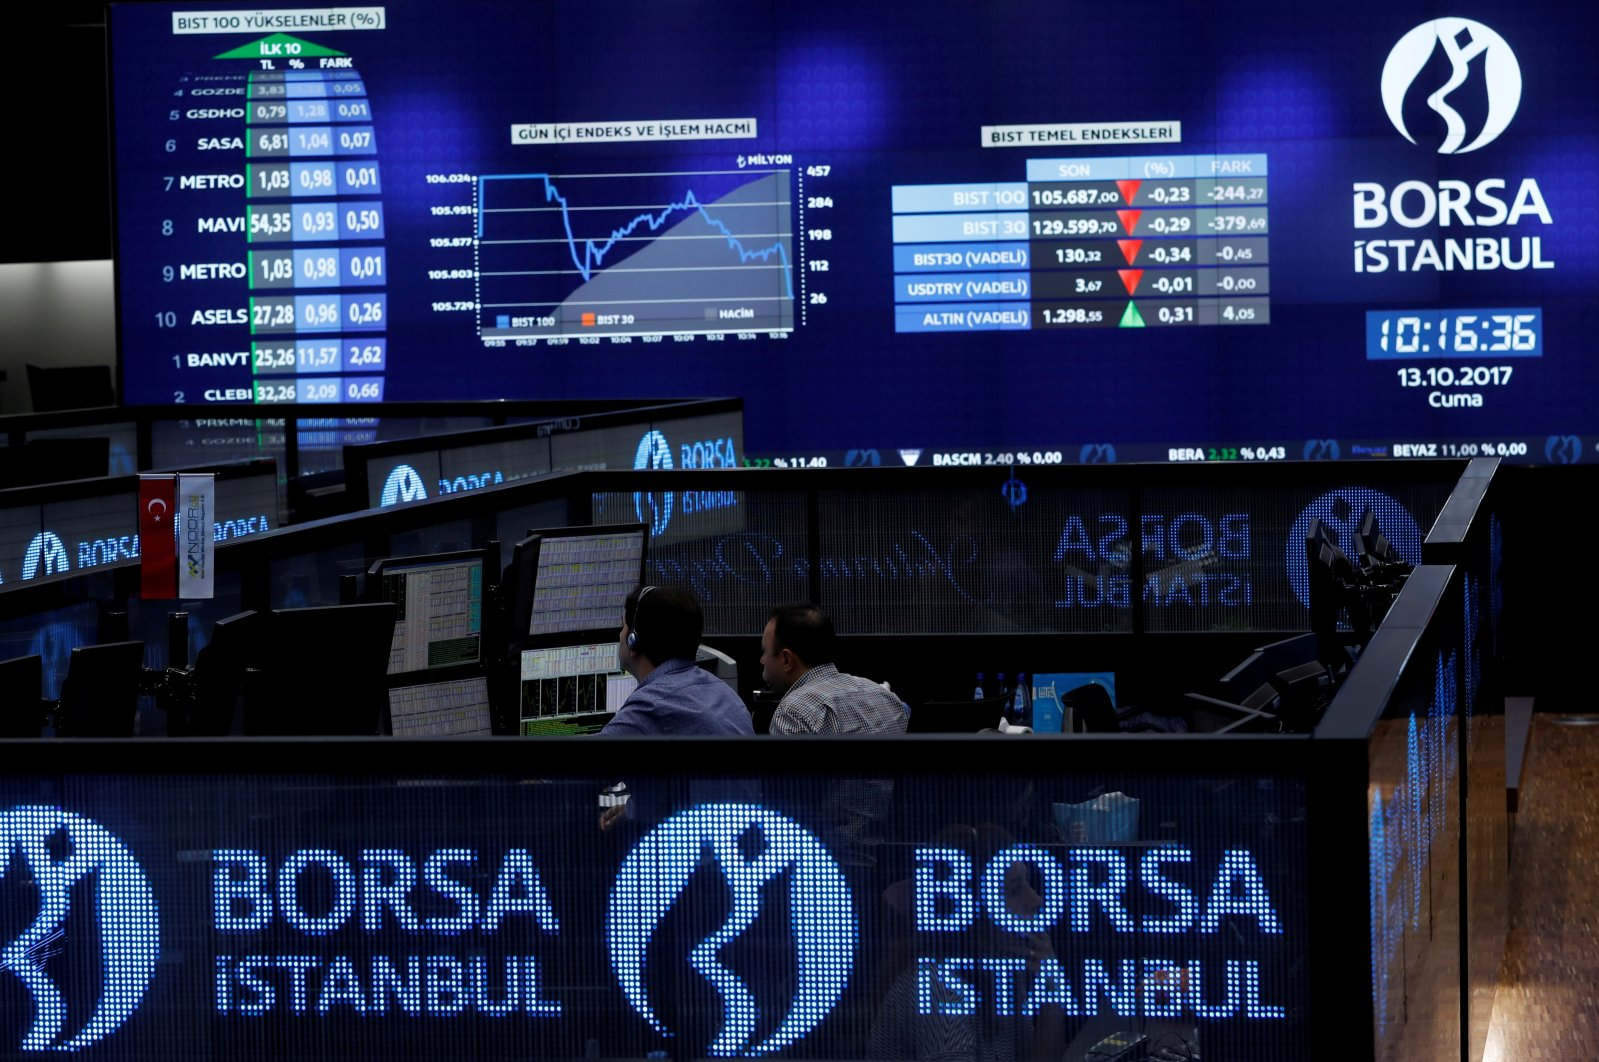 Traders work at their desks on the floor of the Borsa Istanbul in Istanbul, Turkey Oct. 13, 2017. (Reuters Photo)